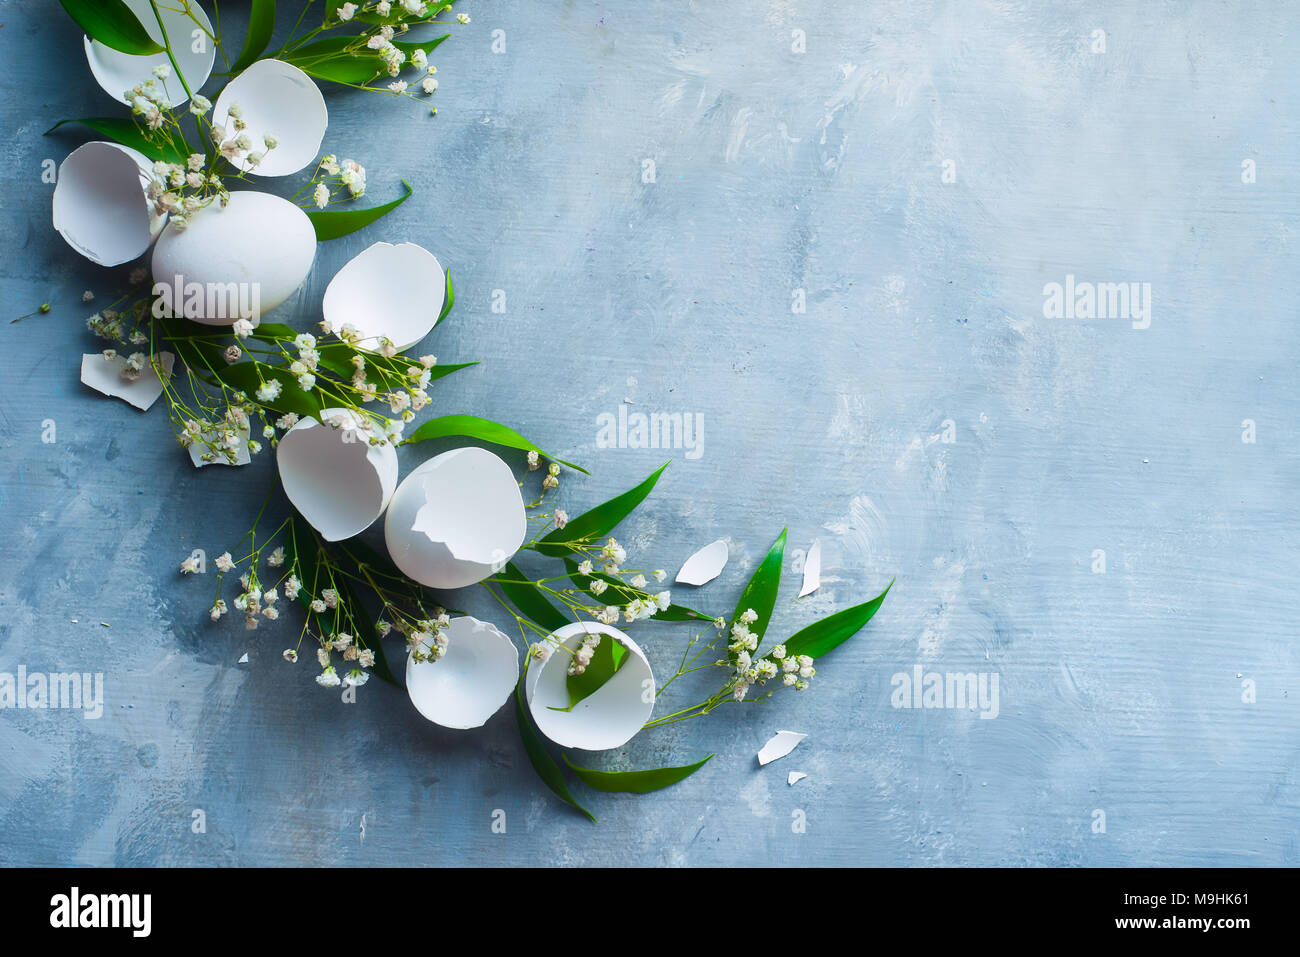 Header With Raw Eggs Decorative Green Leaves And Spring Flowers